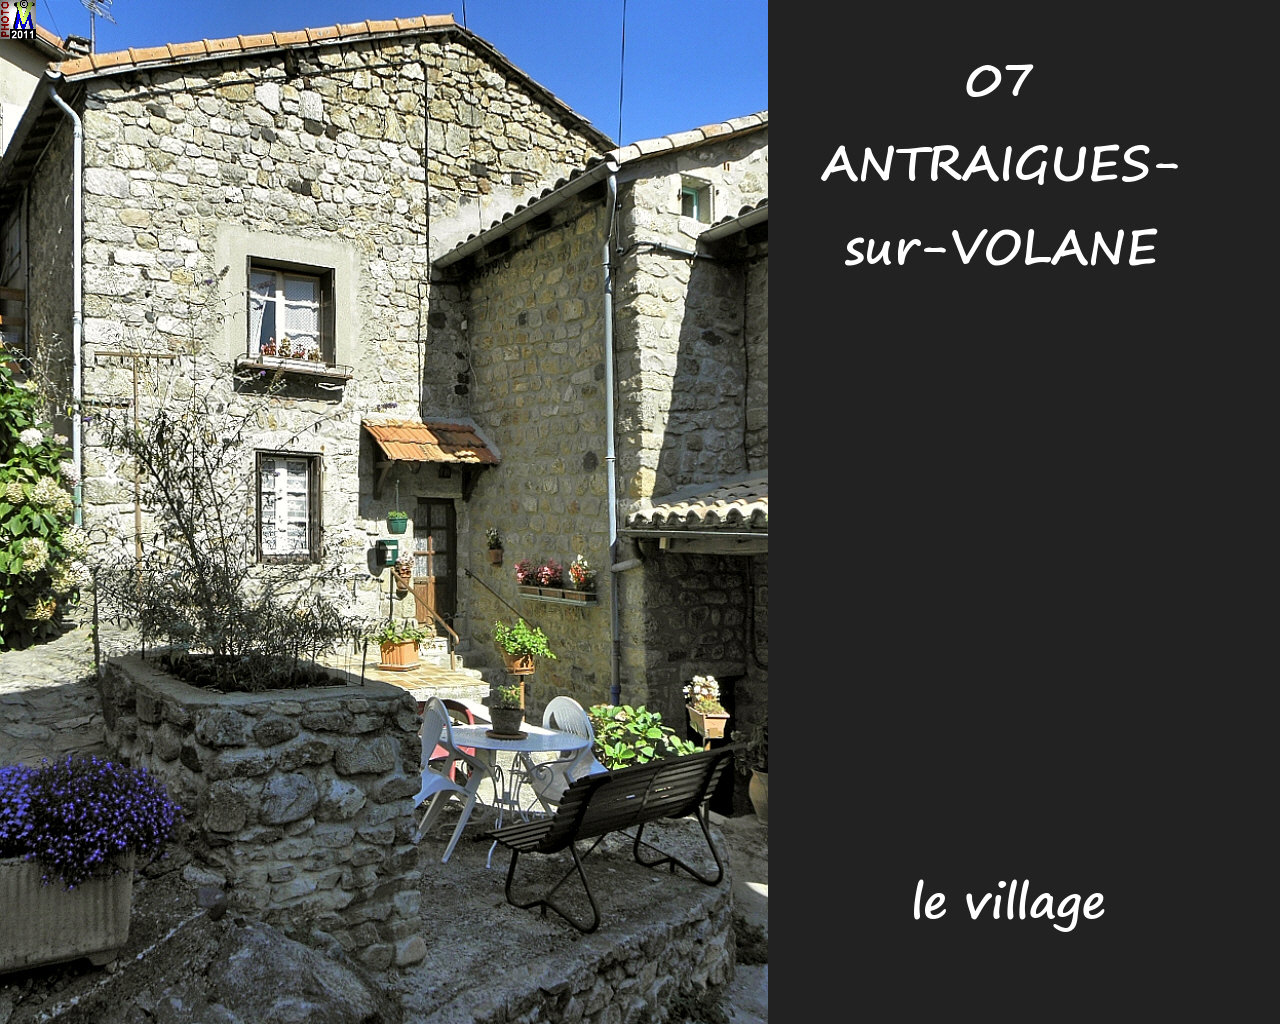 07ANTRAIGUES-VOLANE_village_108.jpg